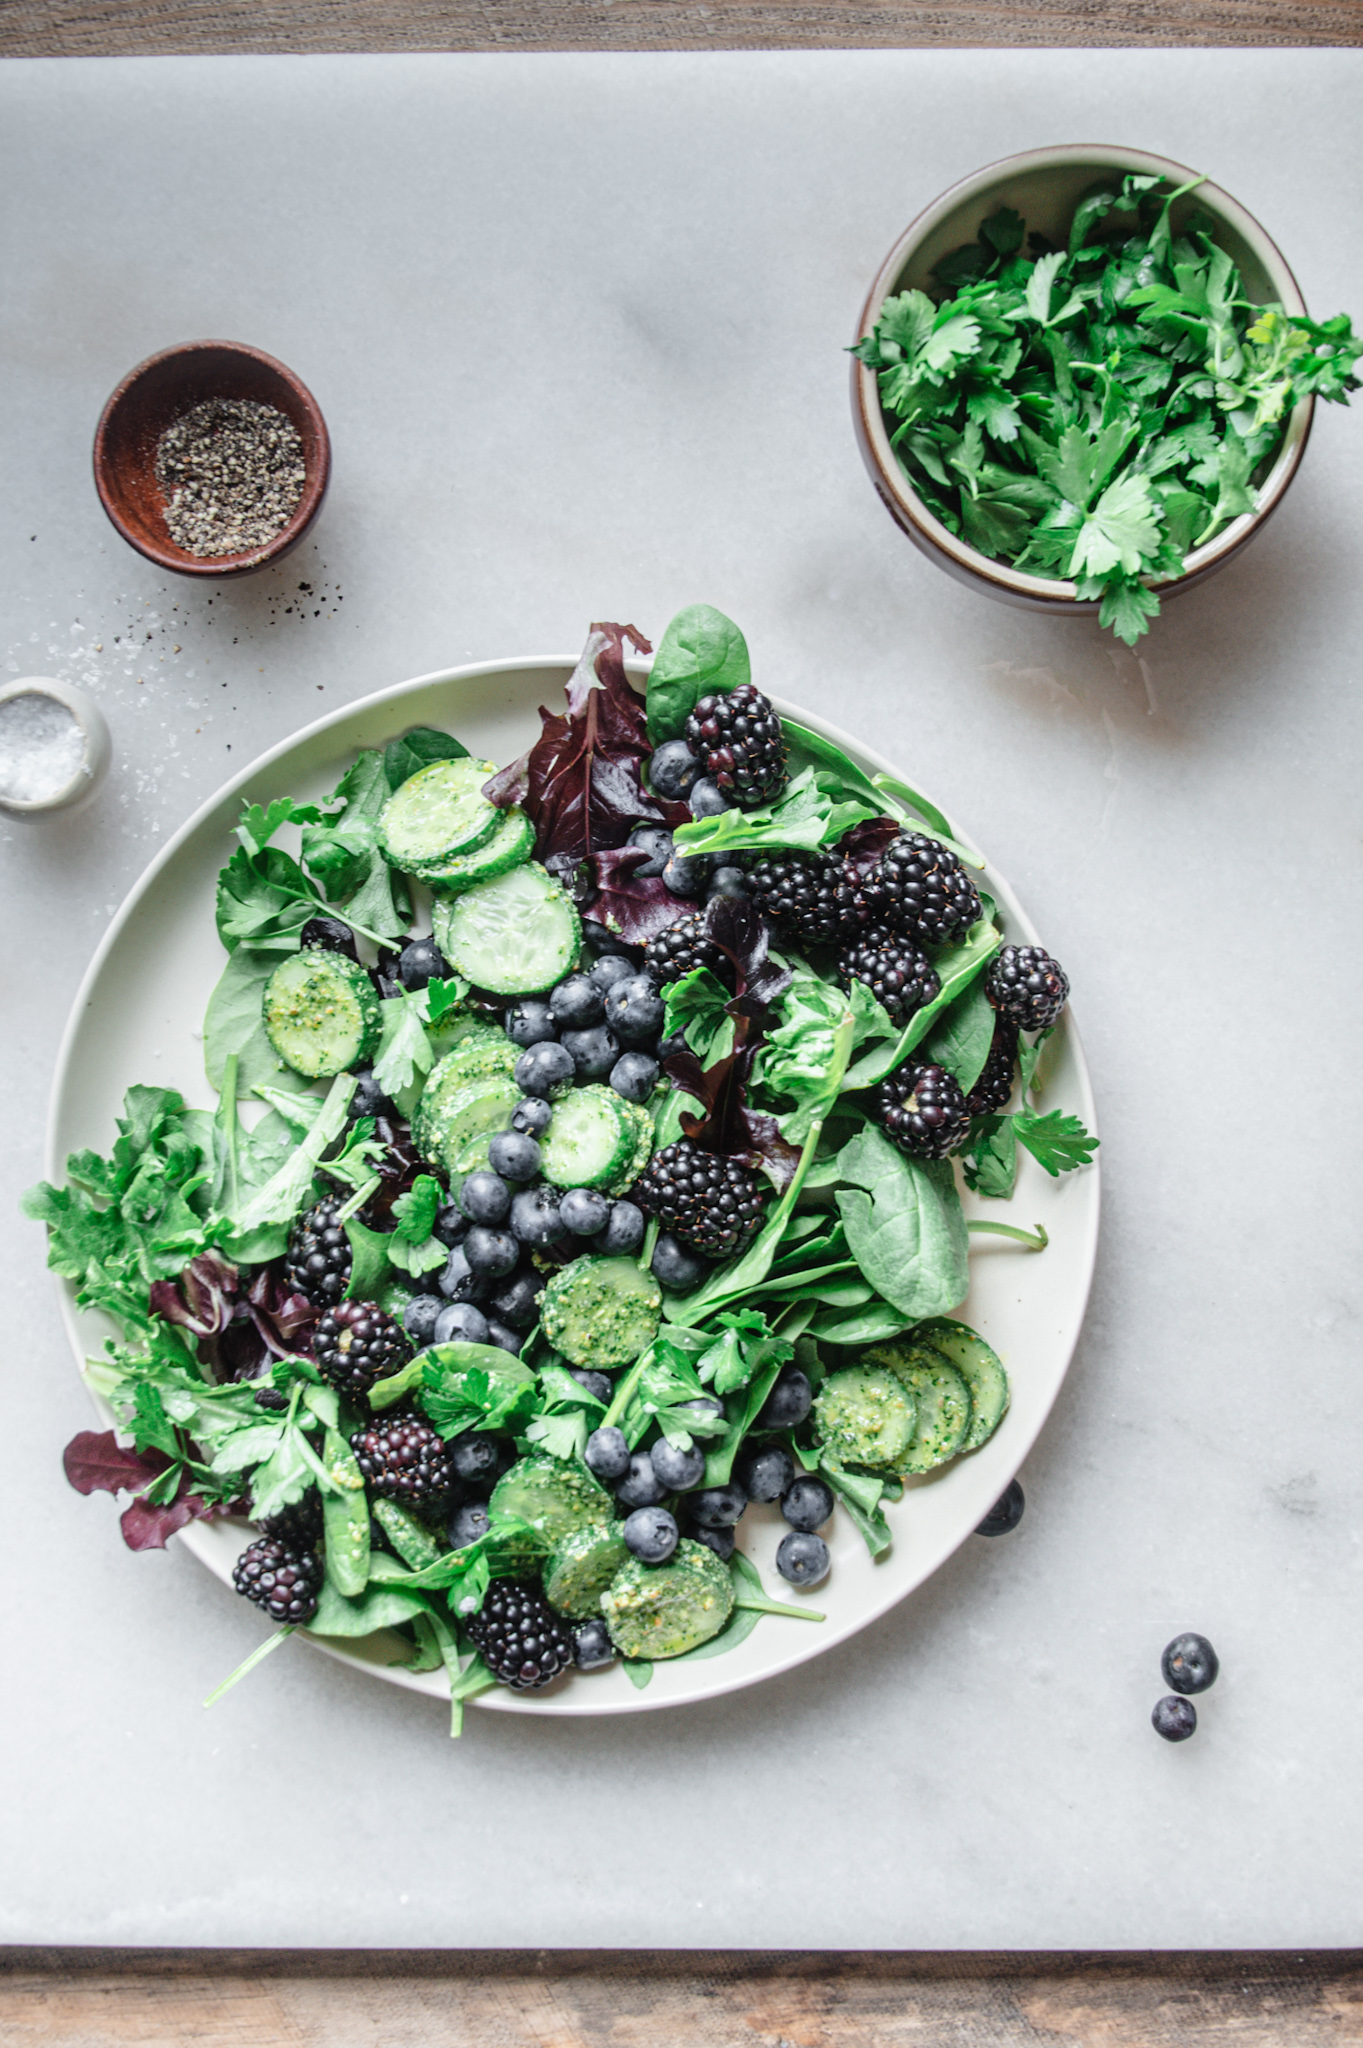 This green goddess salad is fresh, crunch, healthy, and bursting with the flavors of summer